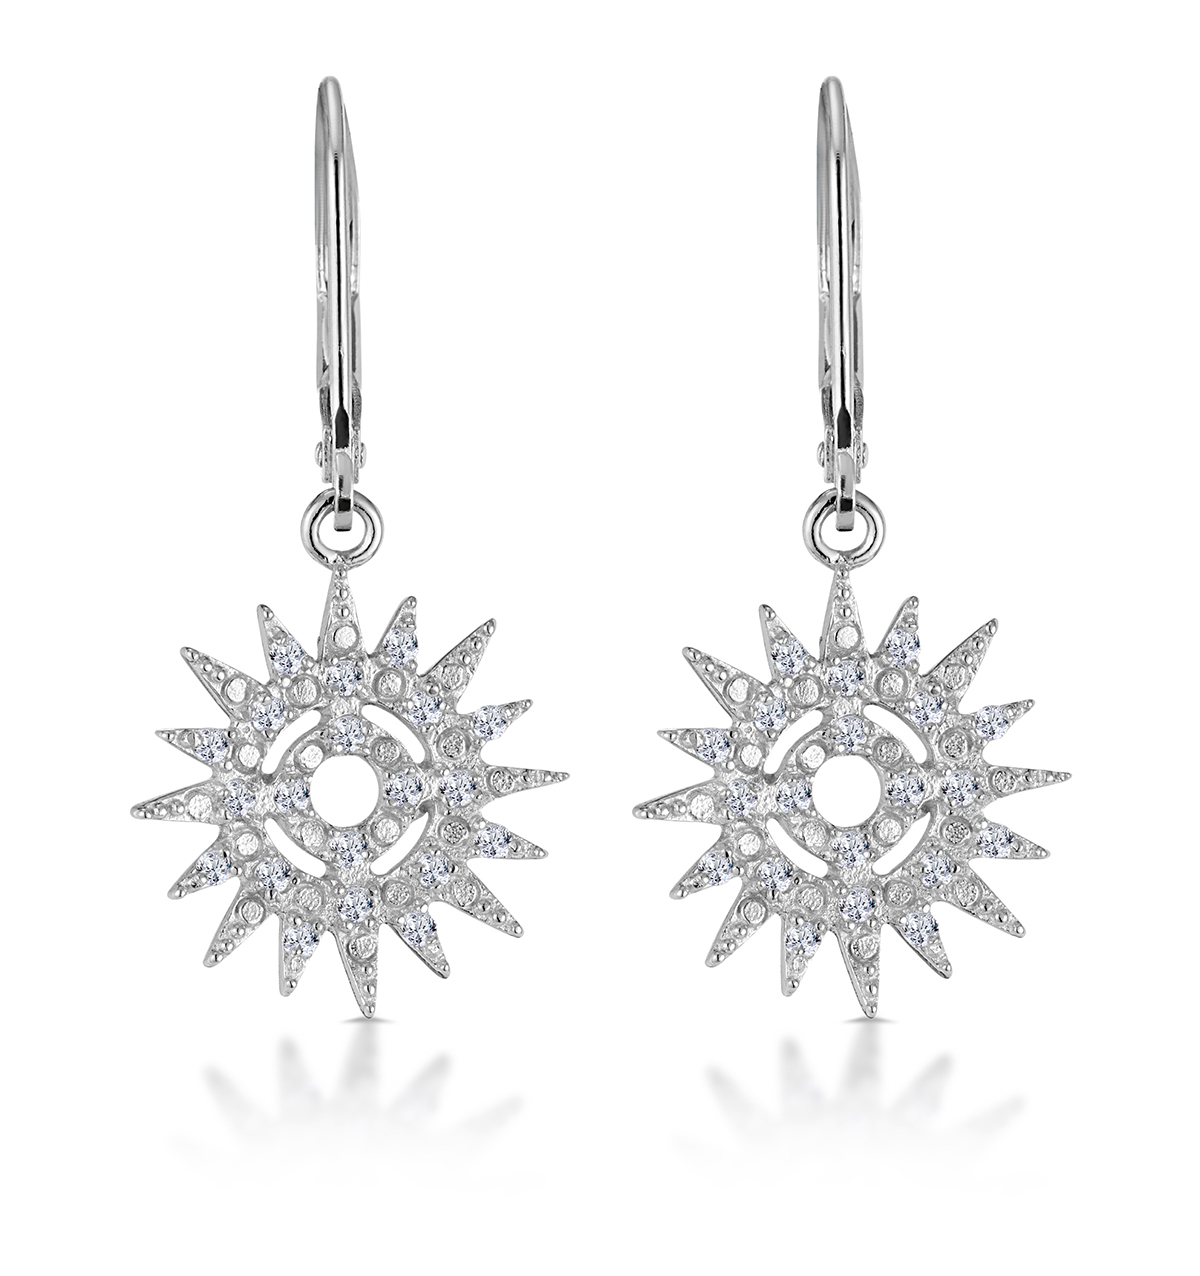 SILVER STARRY SUN DIAL EARRINGS WITH WHITE TOPAZ - TESORO COLLECTION